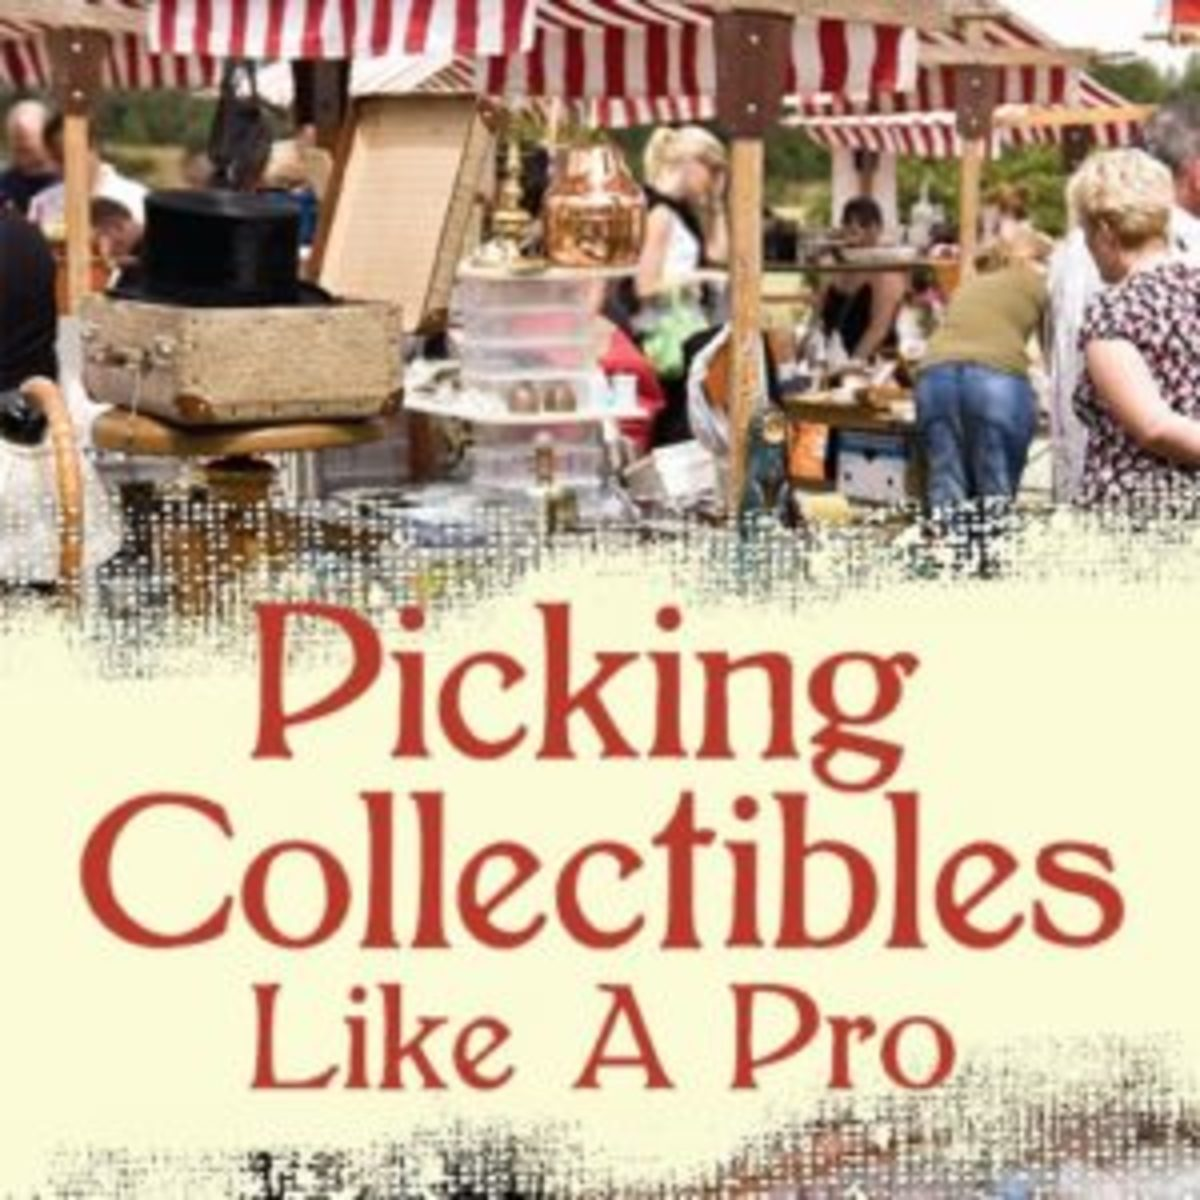 Picking Collectibles Like a Pro